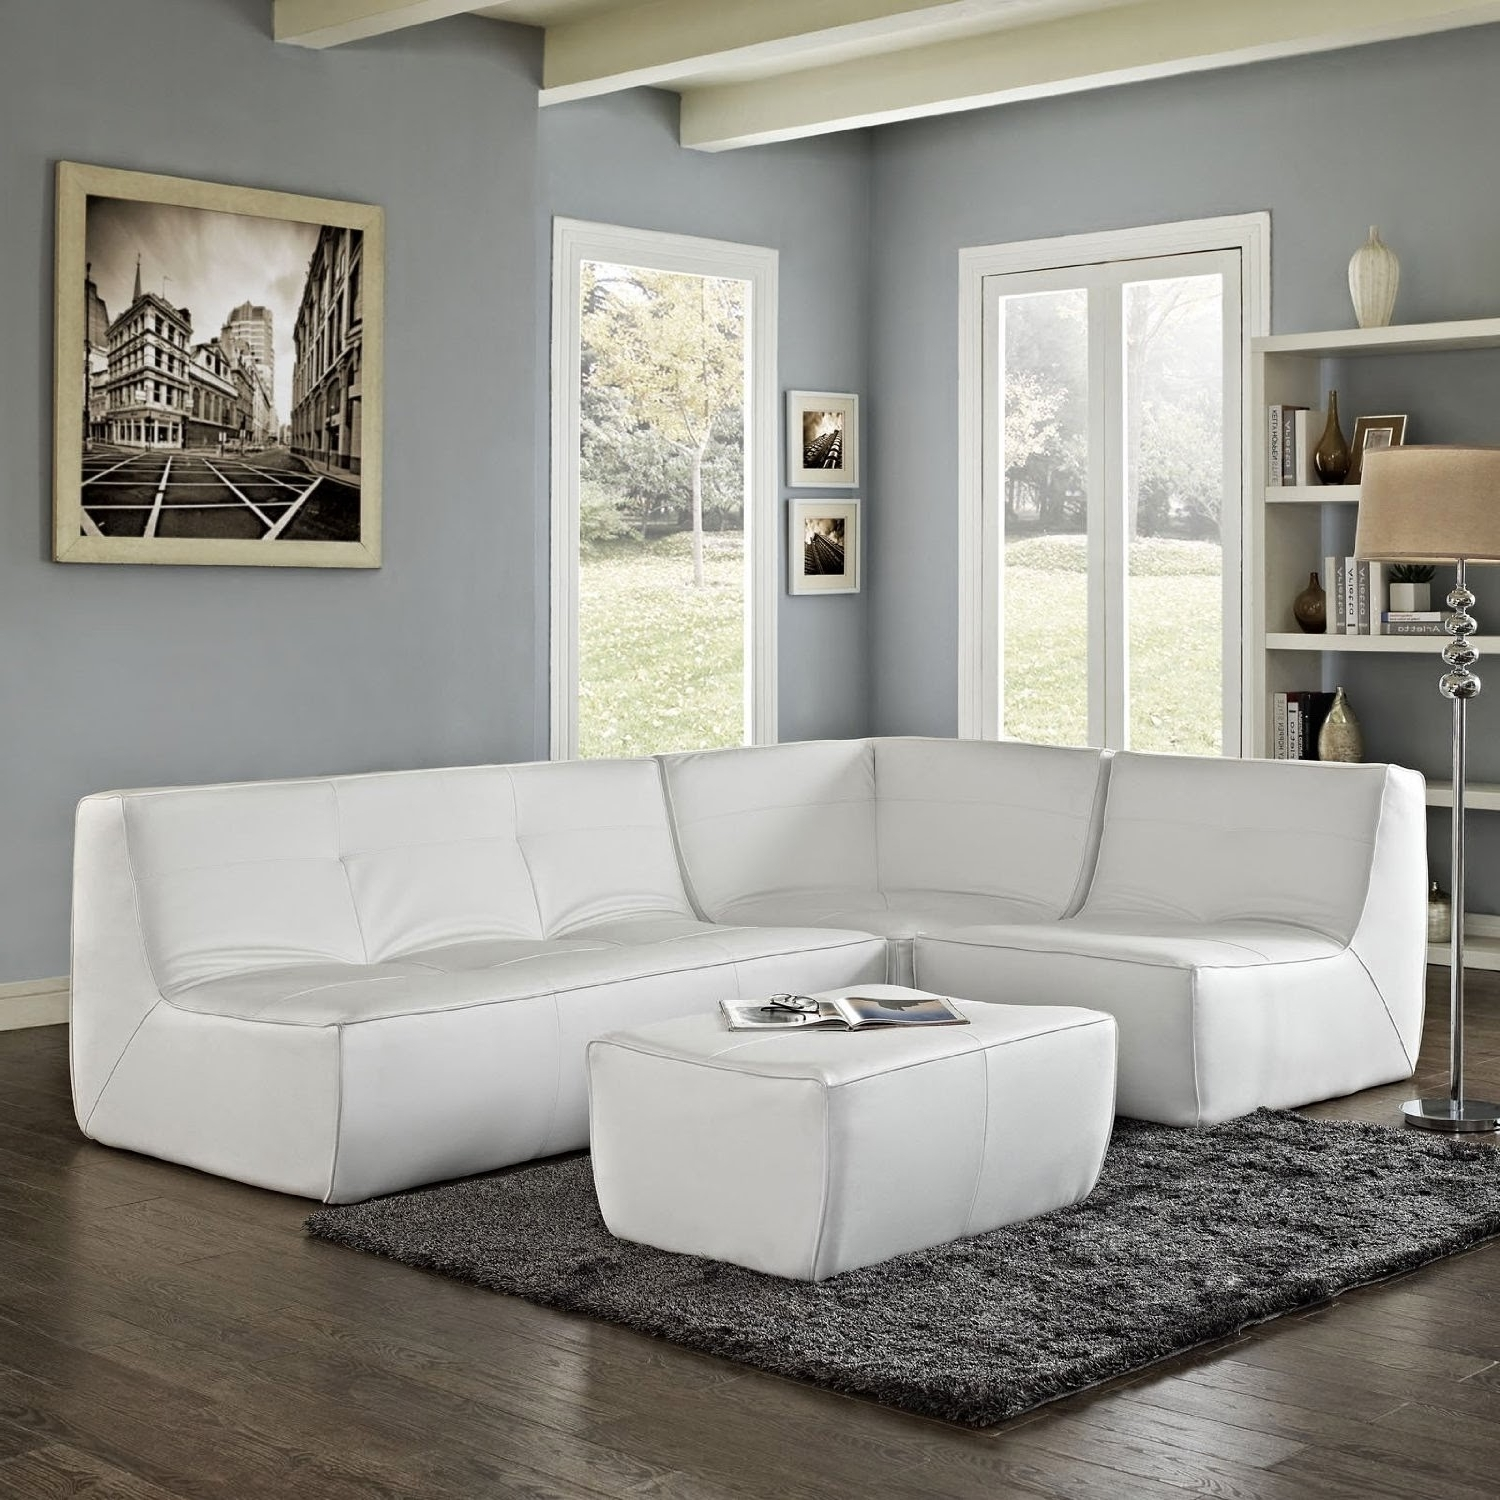 Sofas Awesome White Leather Loveseat Gray Sectional Sofa Canada With 2018 El Dorado Sectional Sofas (View 12 of 15)